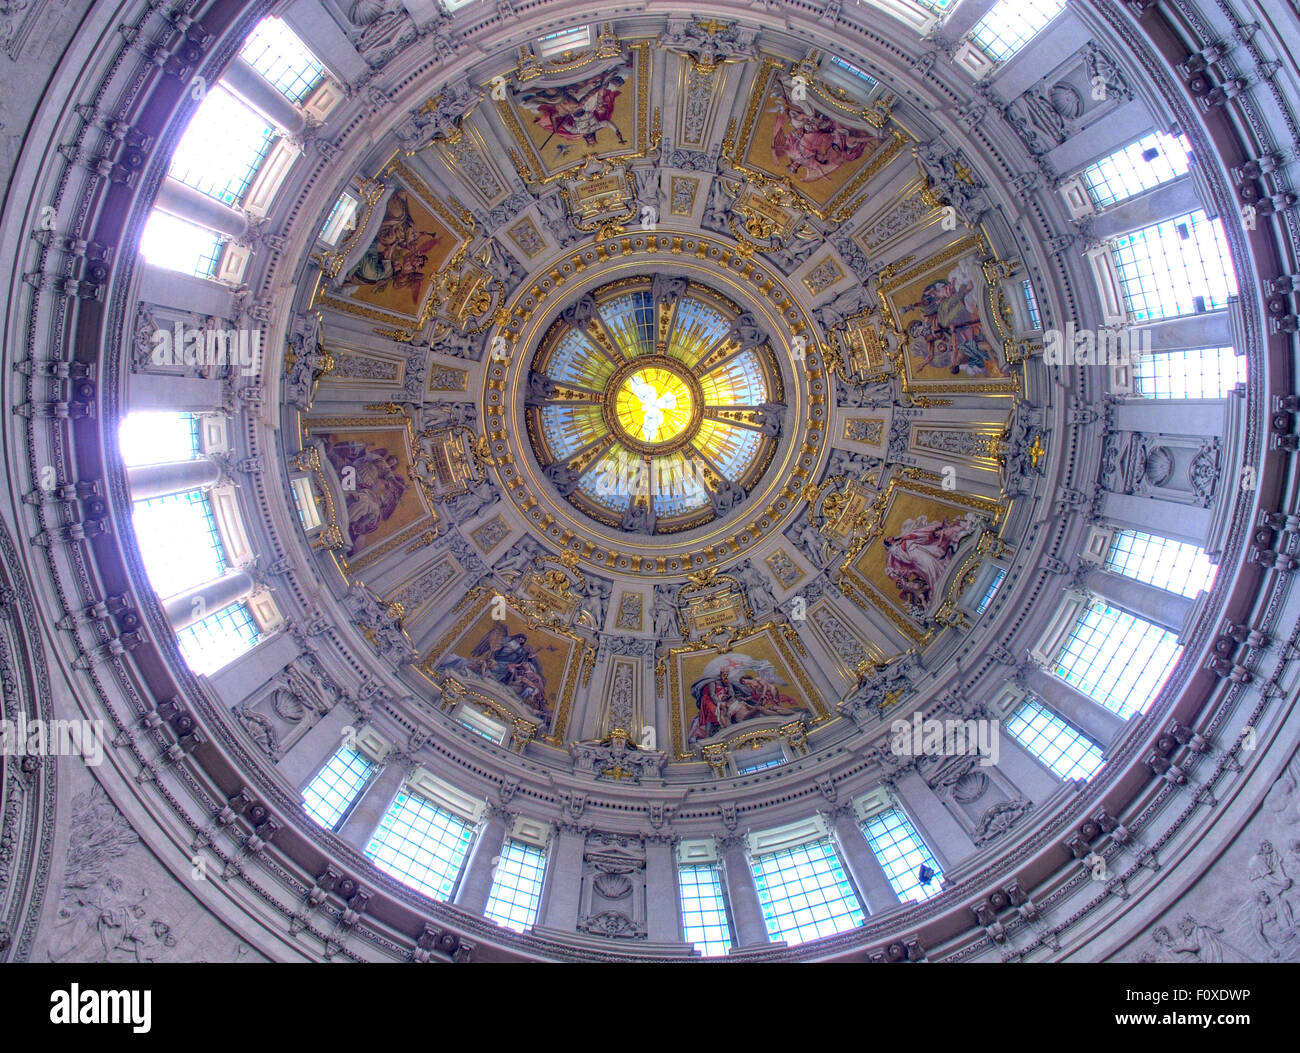 Berlin Cathedral Dome, interior looking up, Germany - Stock Image